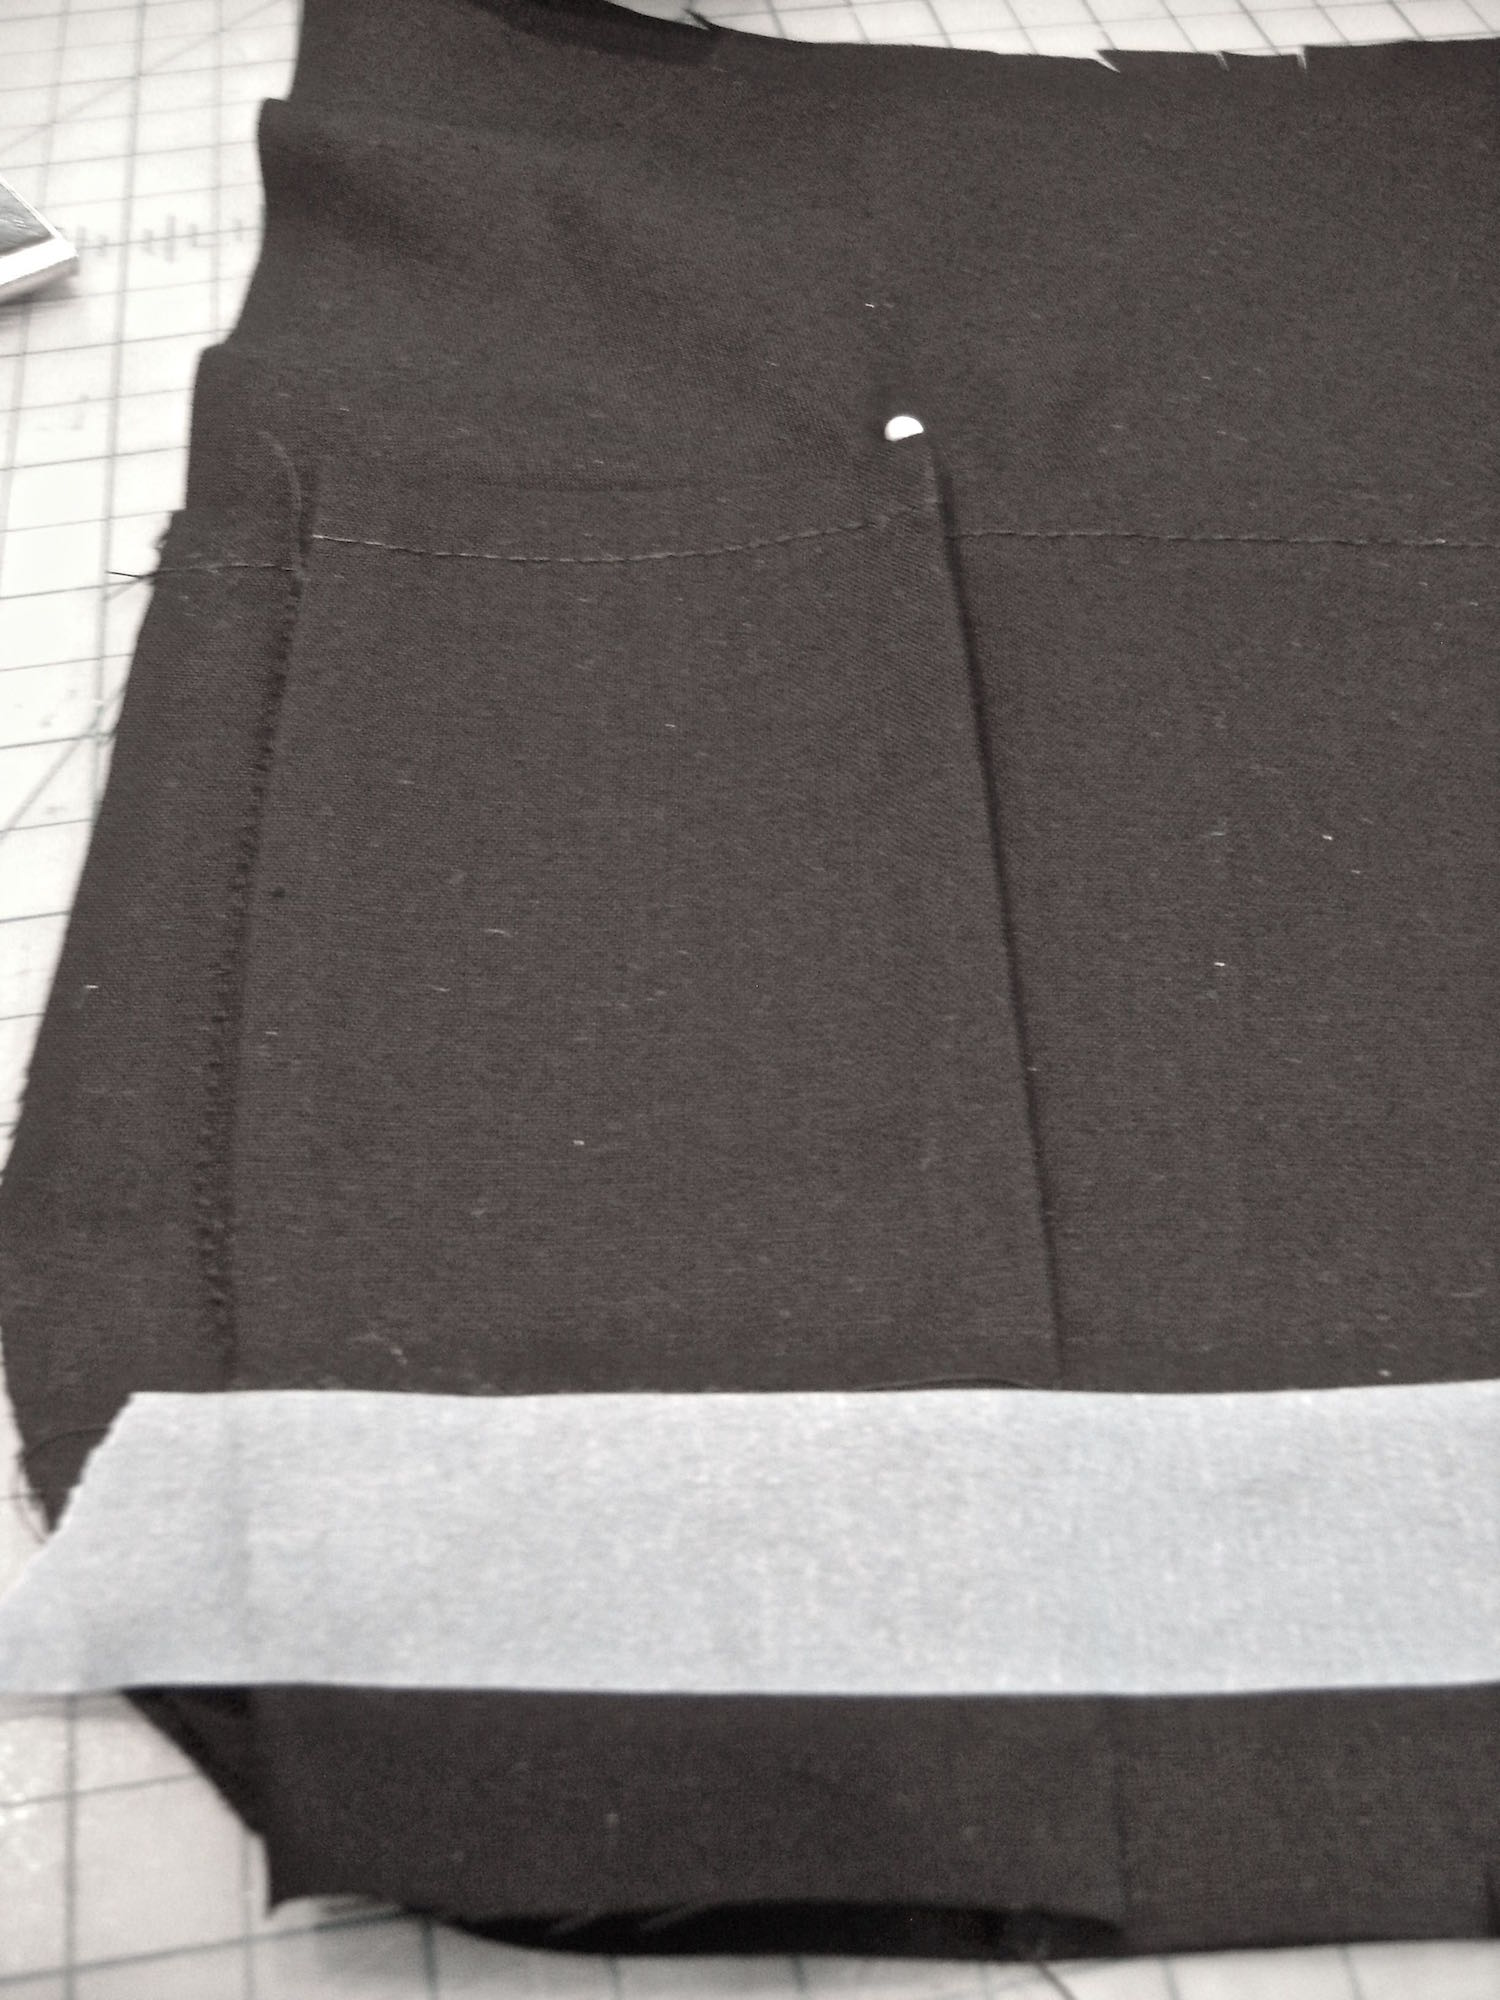 step 6 - Remove the item and lightly press, pleating the excess fabric on both pocket edges.